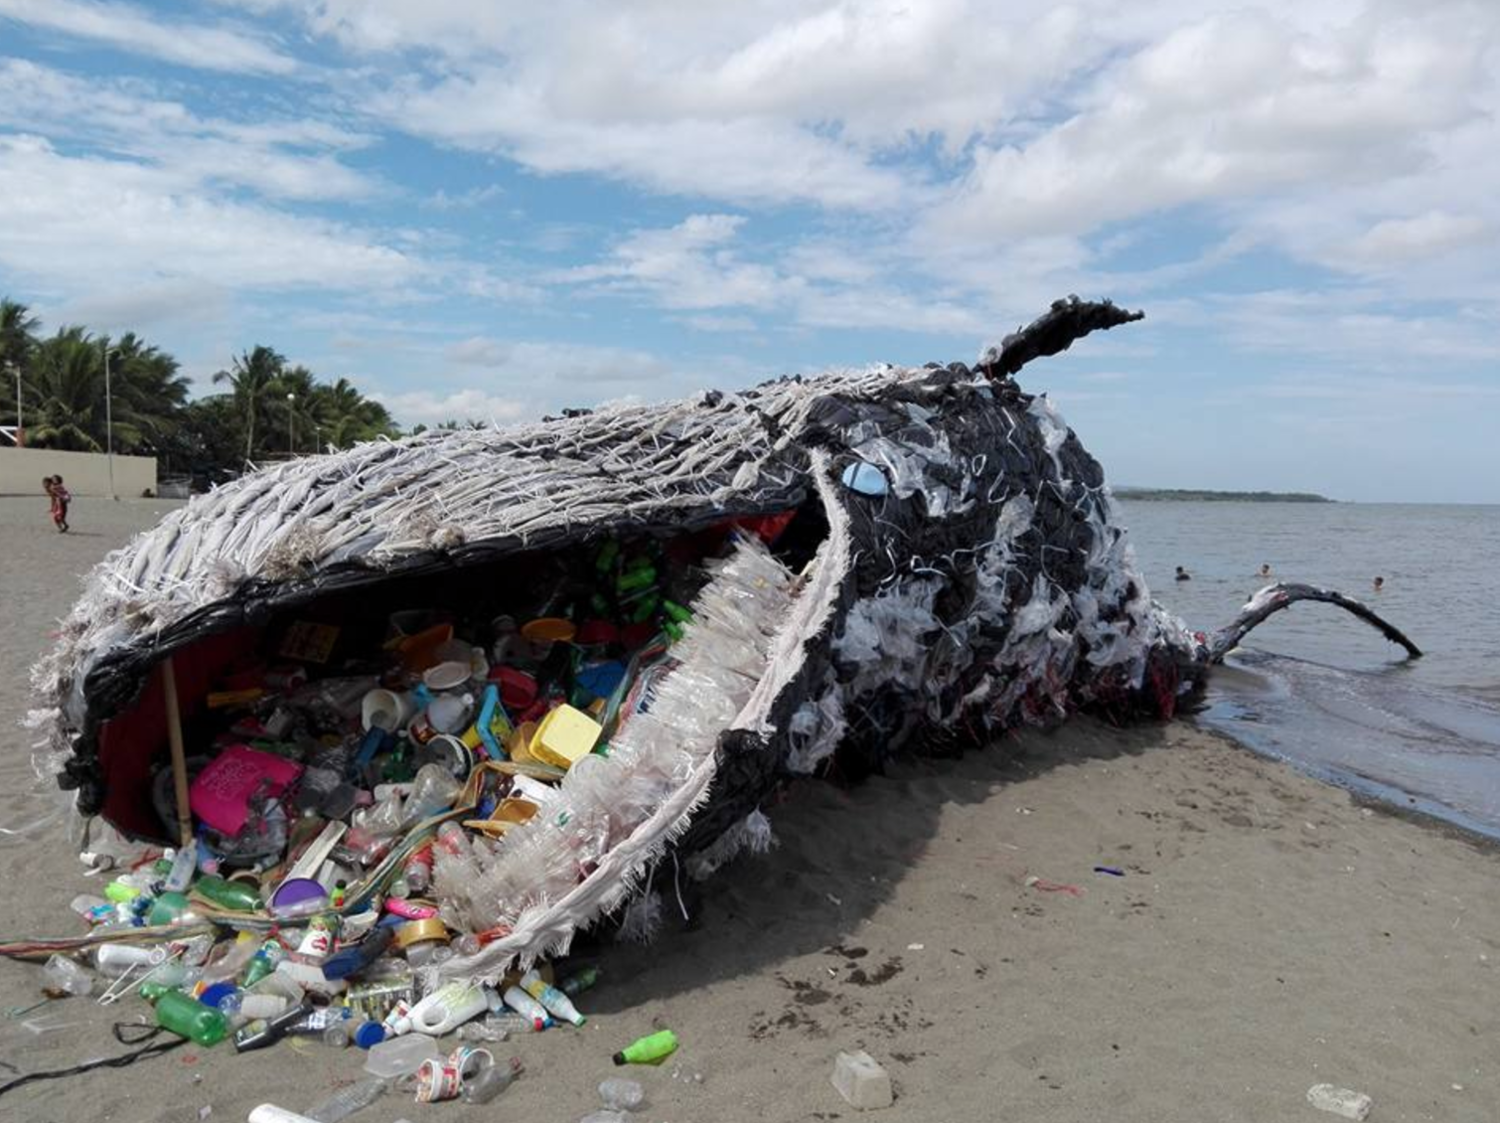 A Giant Beached Whale Illustrates the Plastic Pollution ...